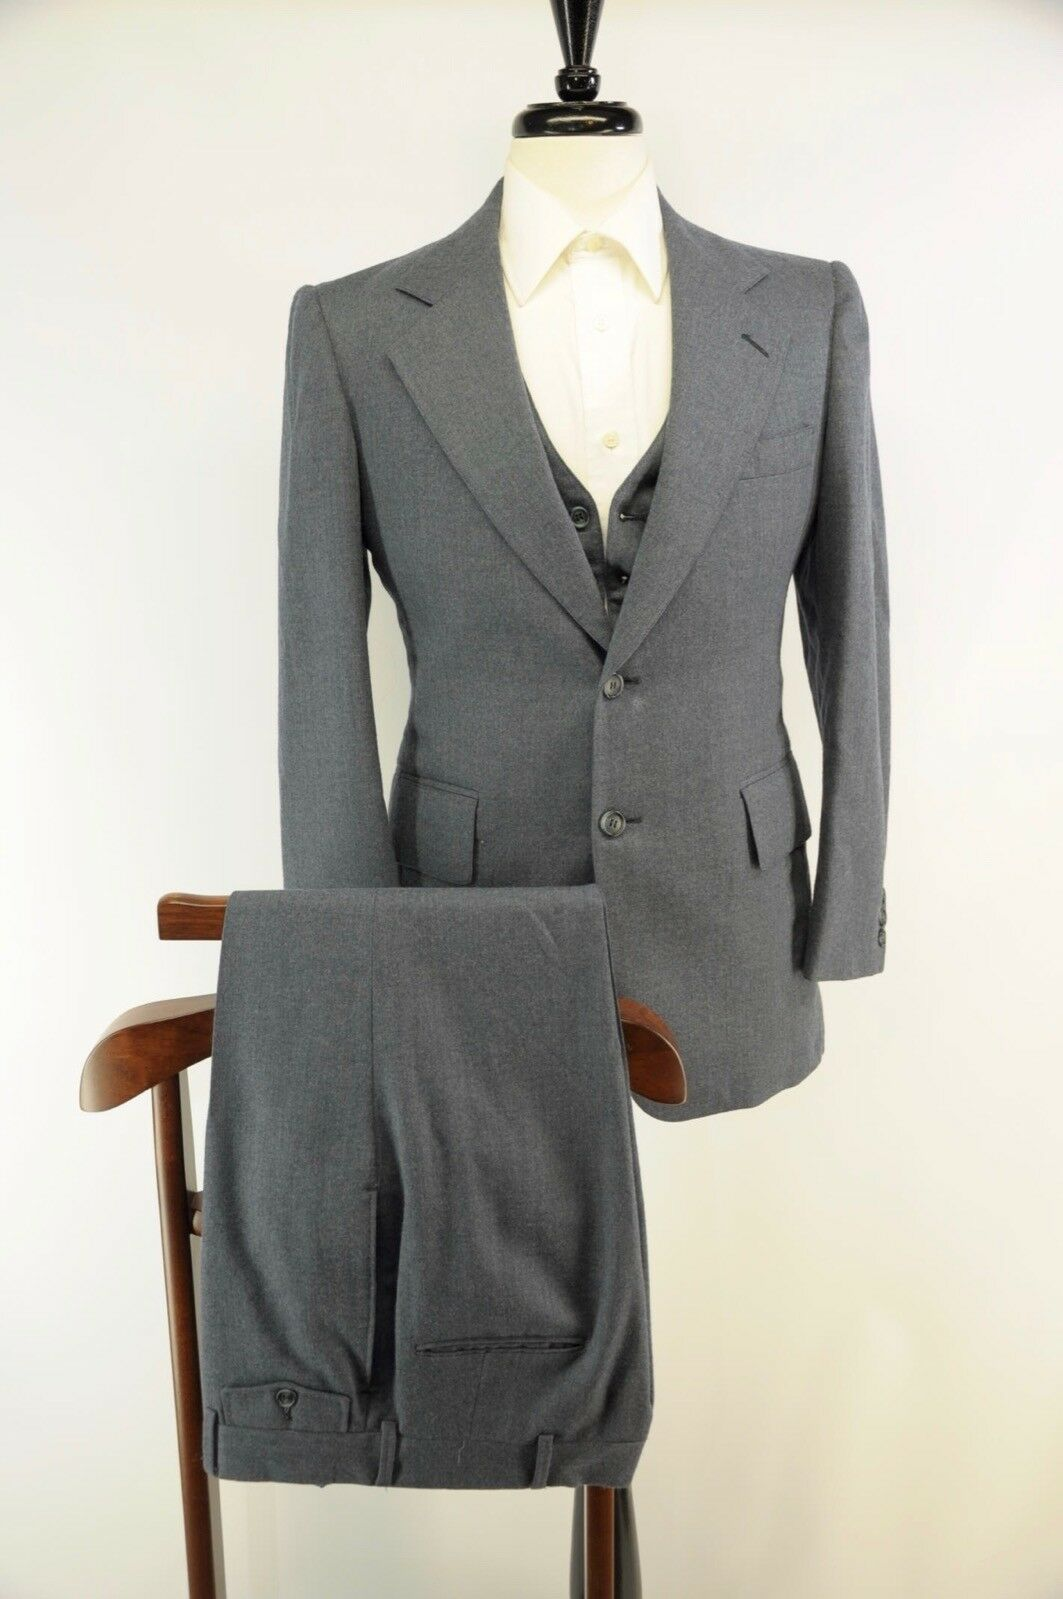 Vintage Navy Blau Flannel 3 Piece 2 Button Made in USA Flat Front Pants Suit 36R